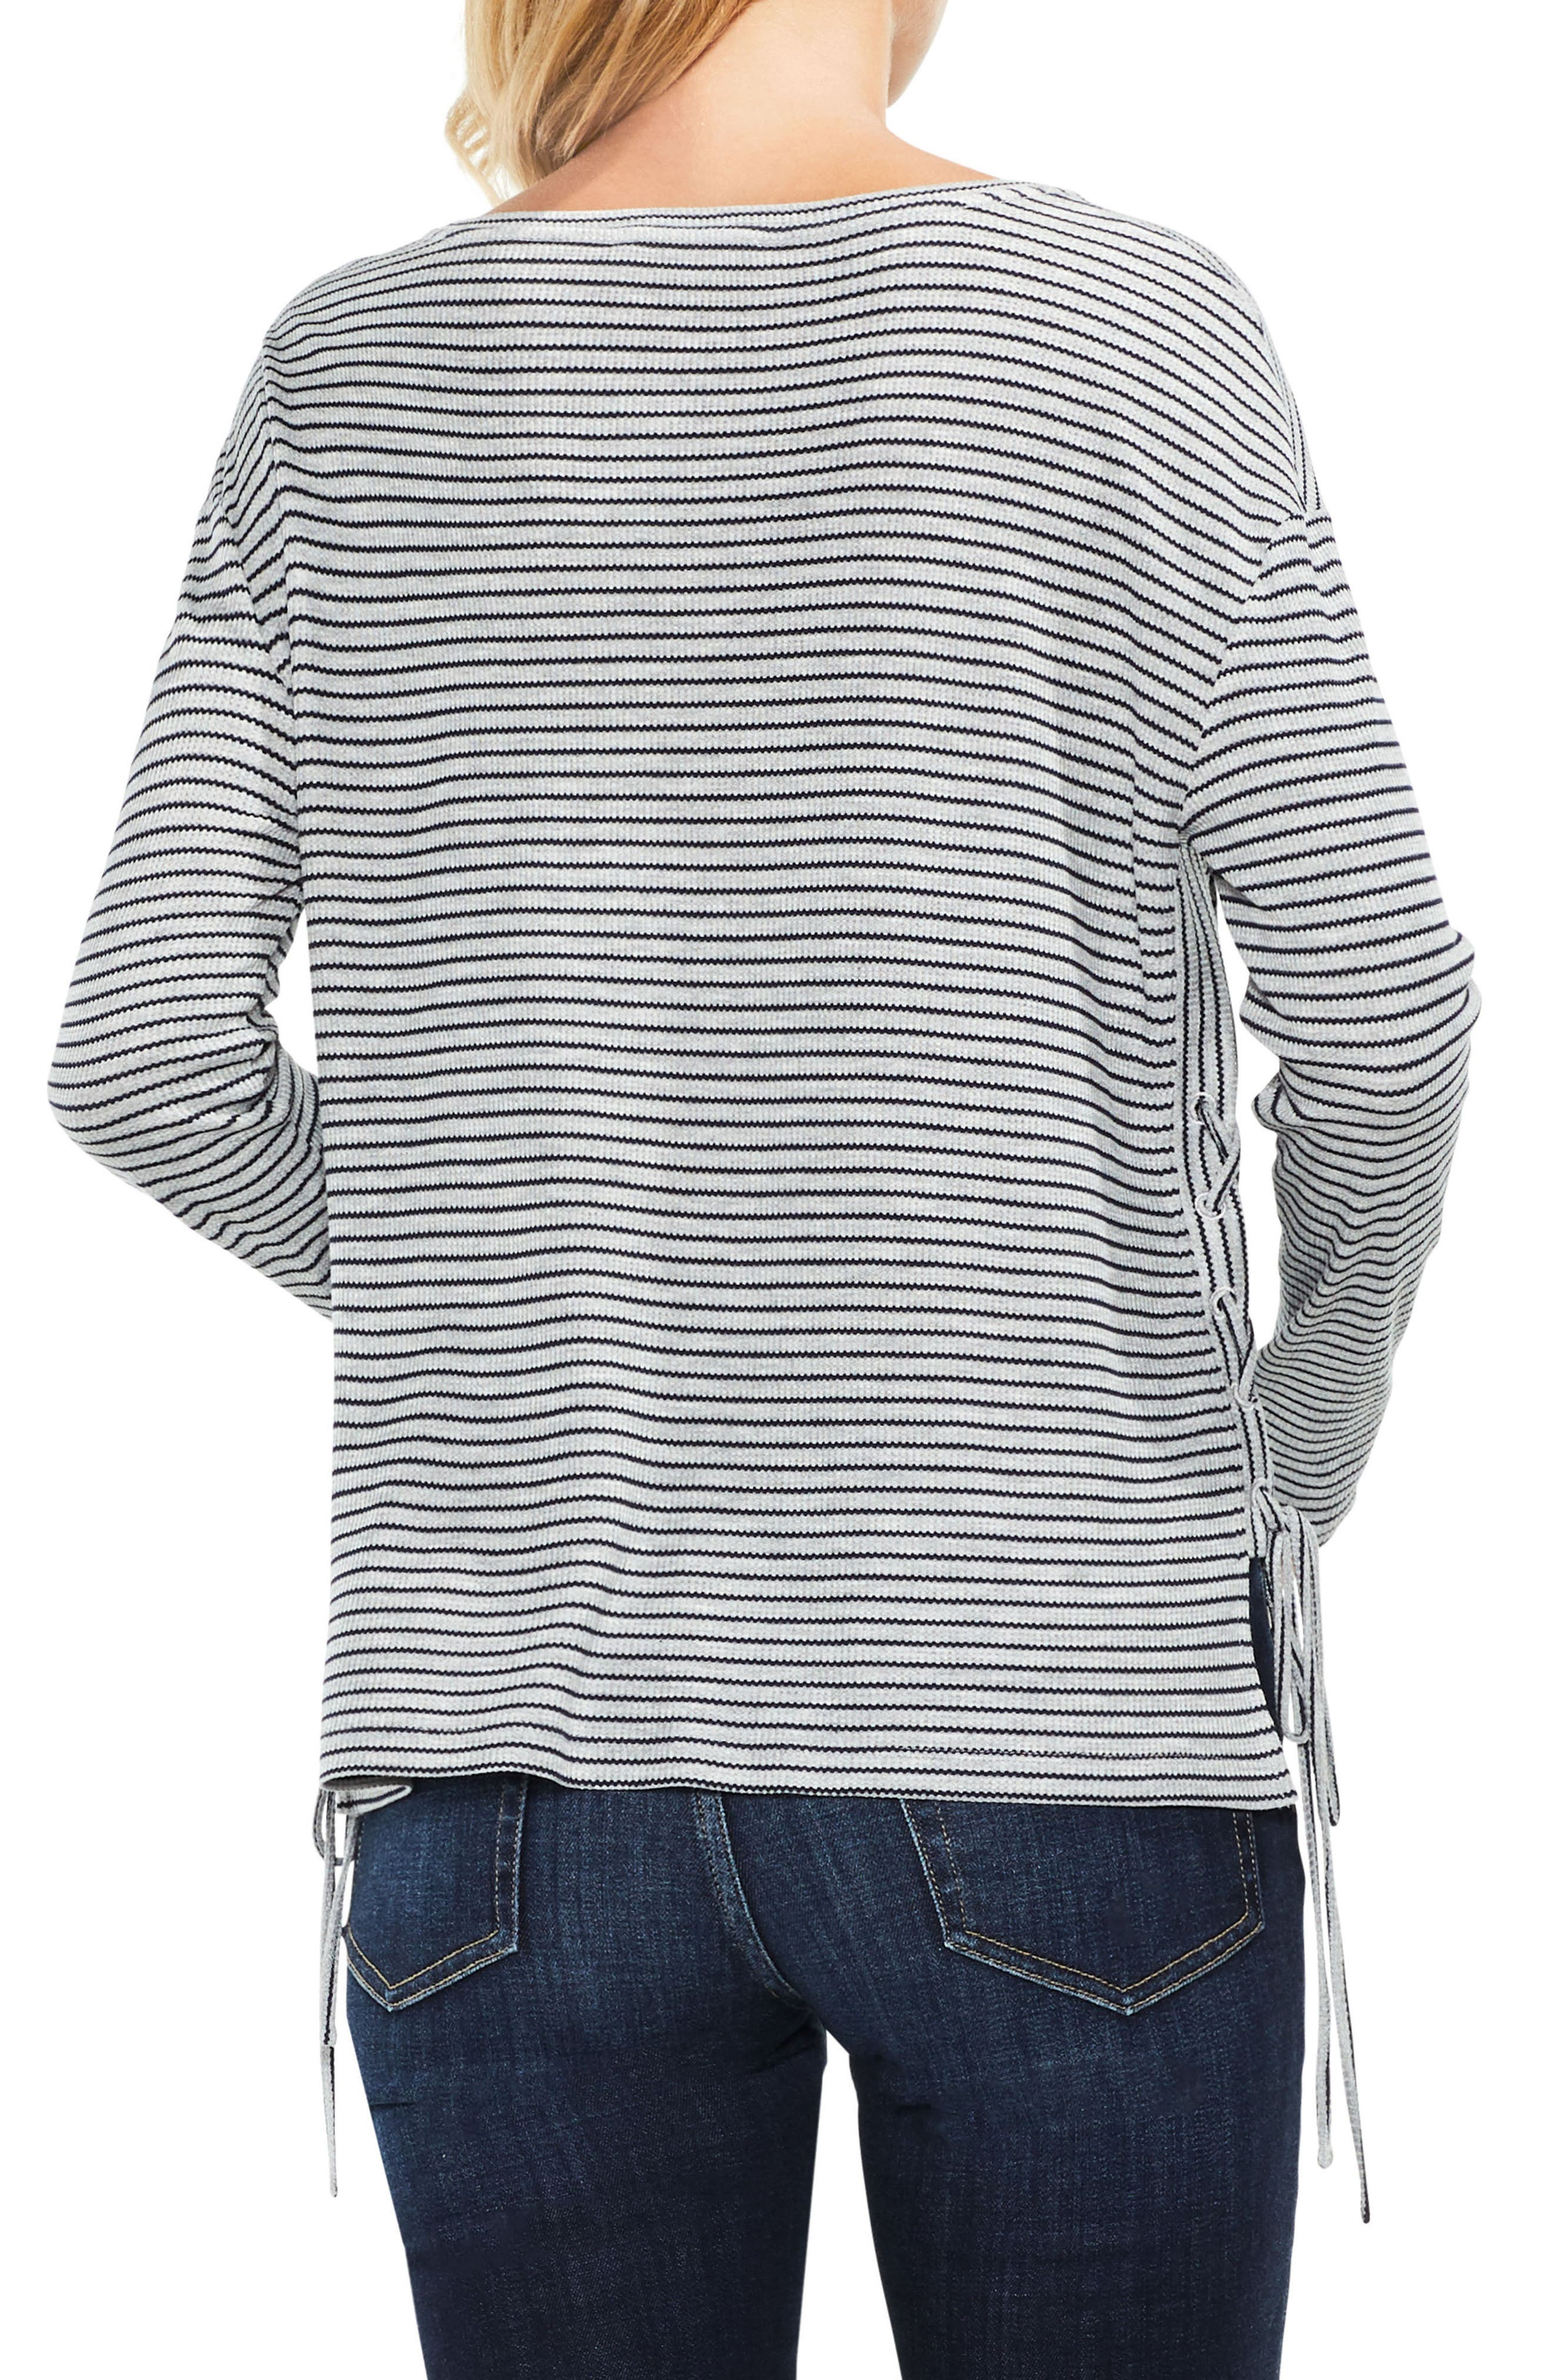 Lace-Up Side Stripe Top,                             Alternate thumbnail 4, color,                             Light Heather Grey